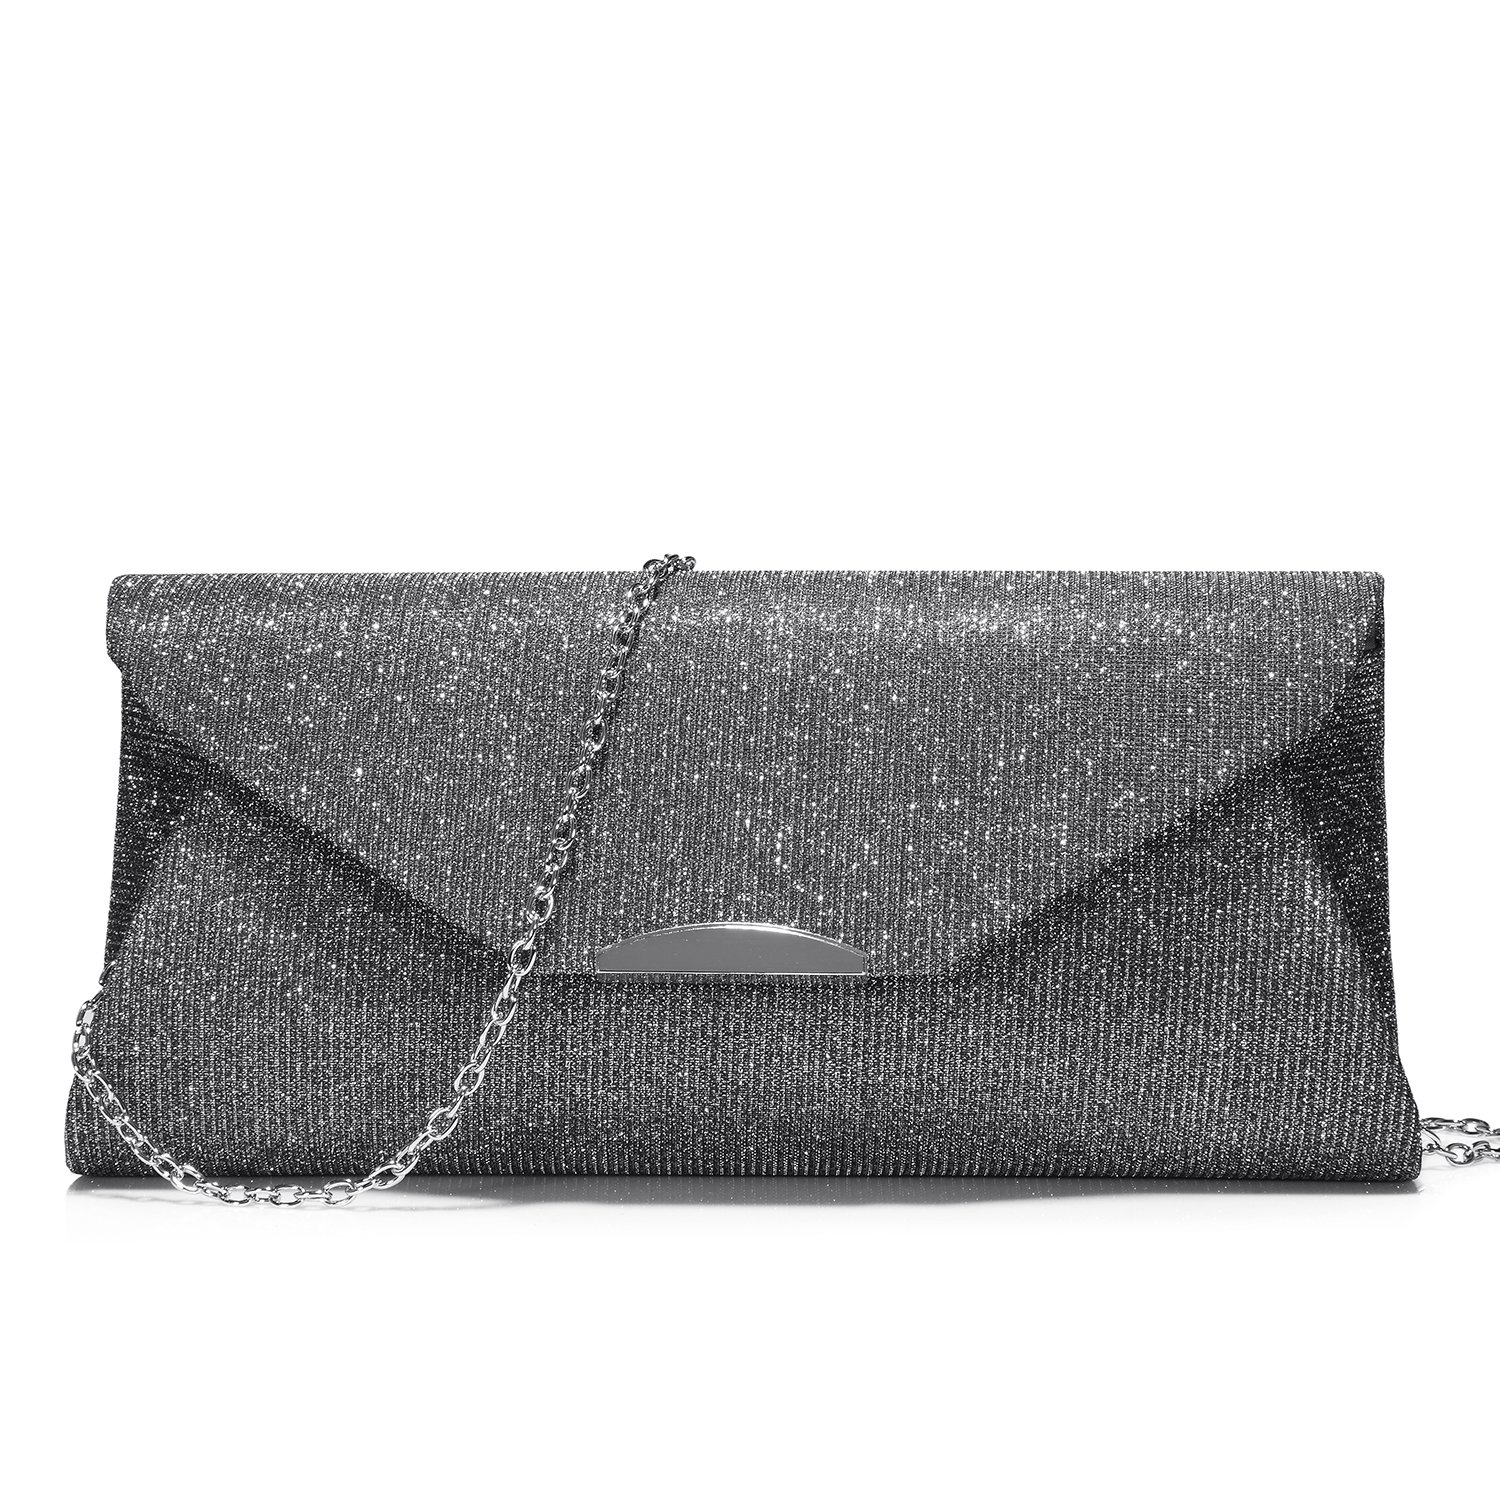 Evening Bags and Clutches for Women Designer Handbags Purse for Party Wedding Prom Gray